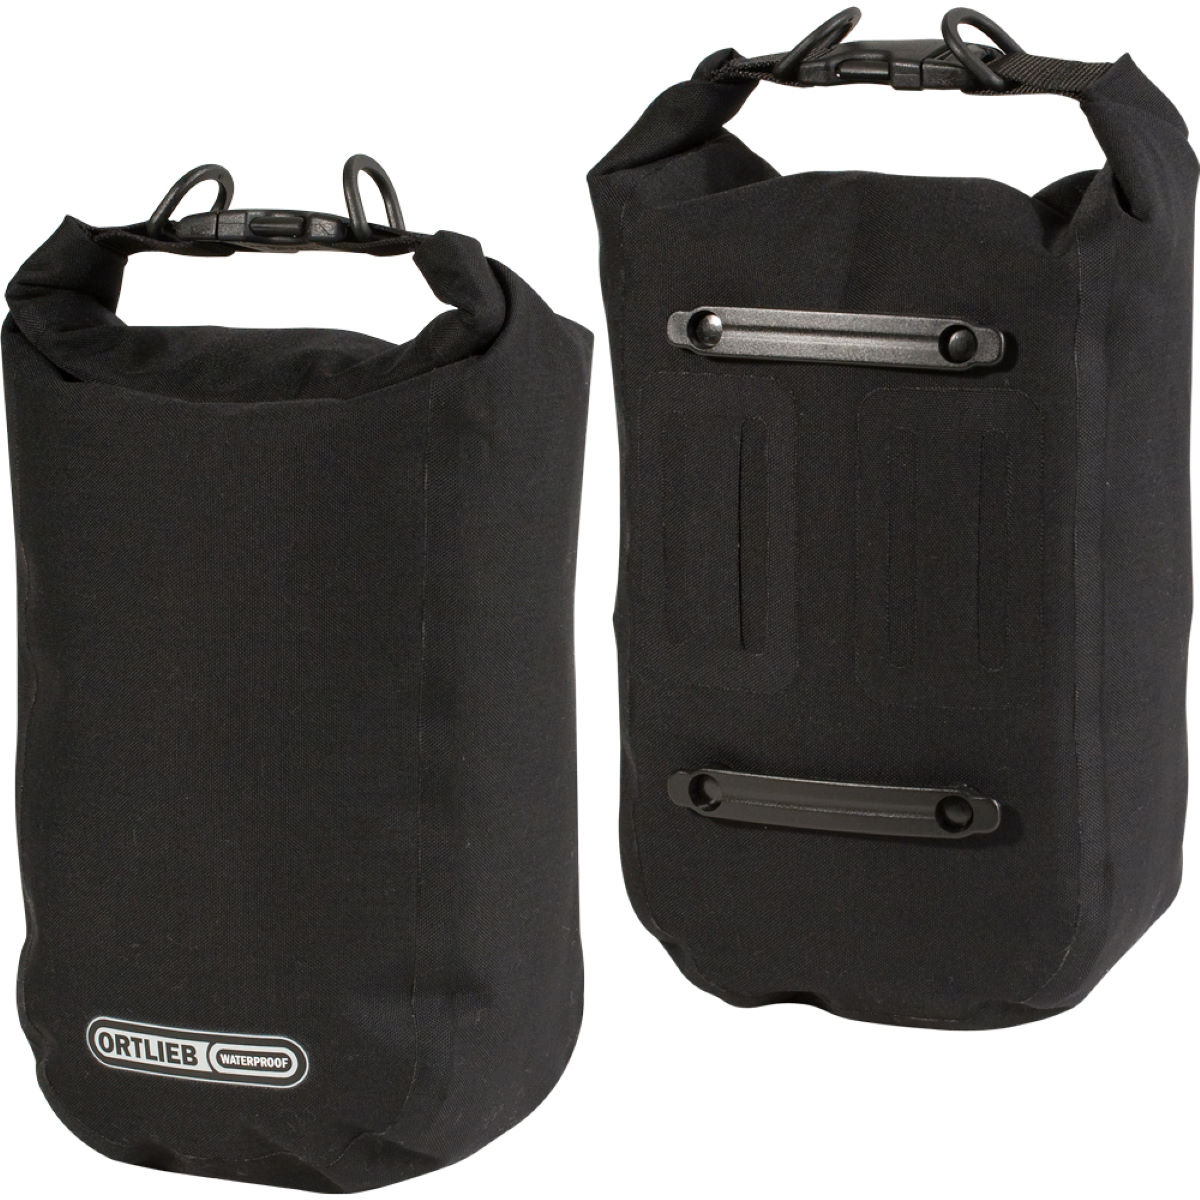 Ortlieb Outer Pocket Pannier Add On - Large